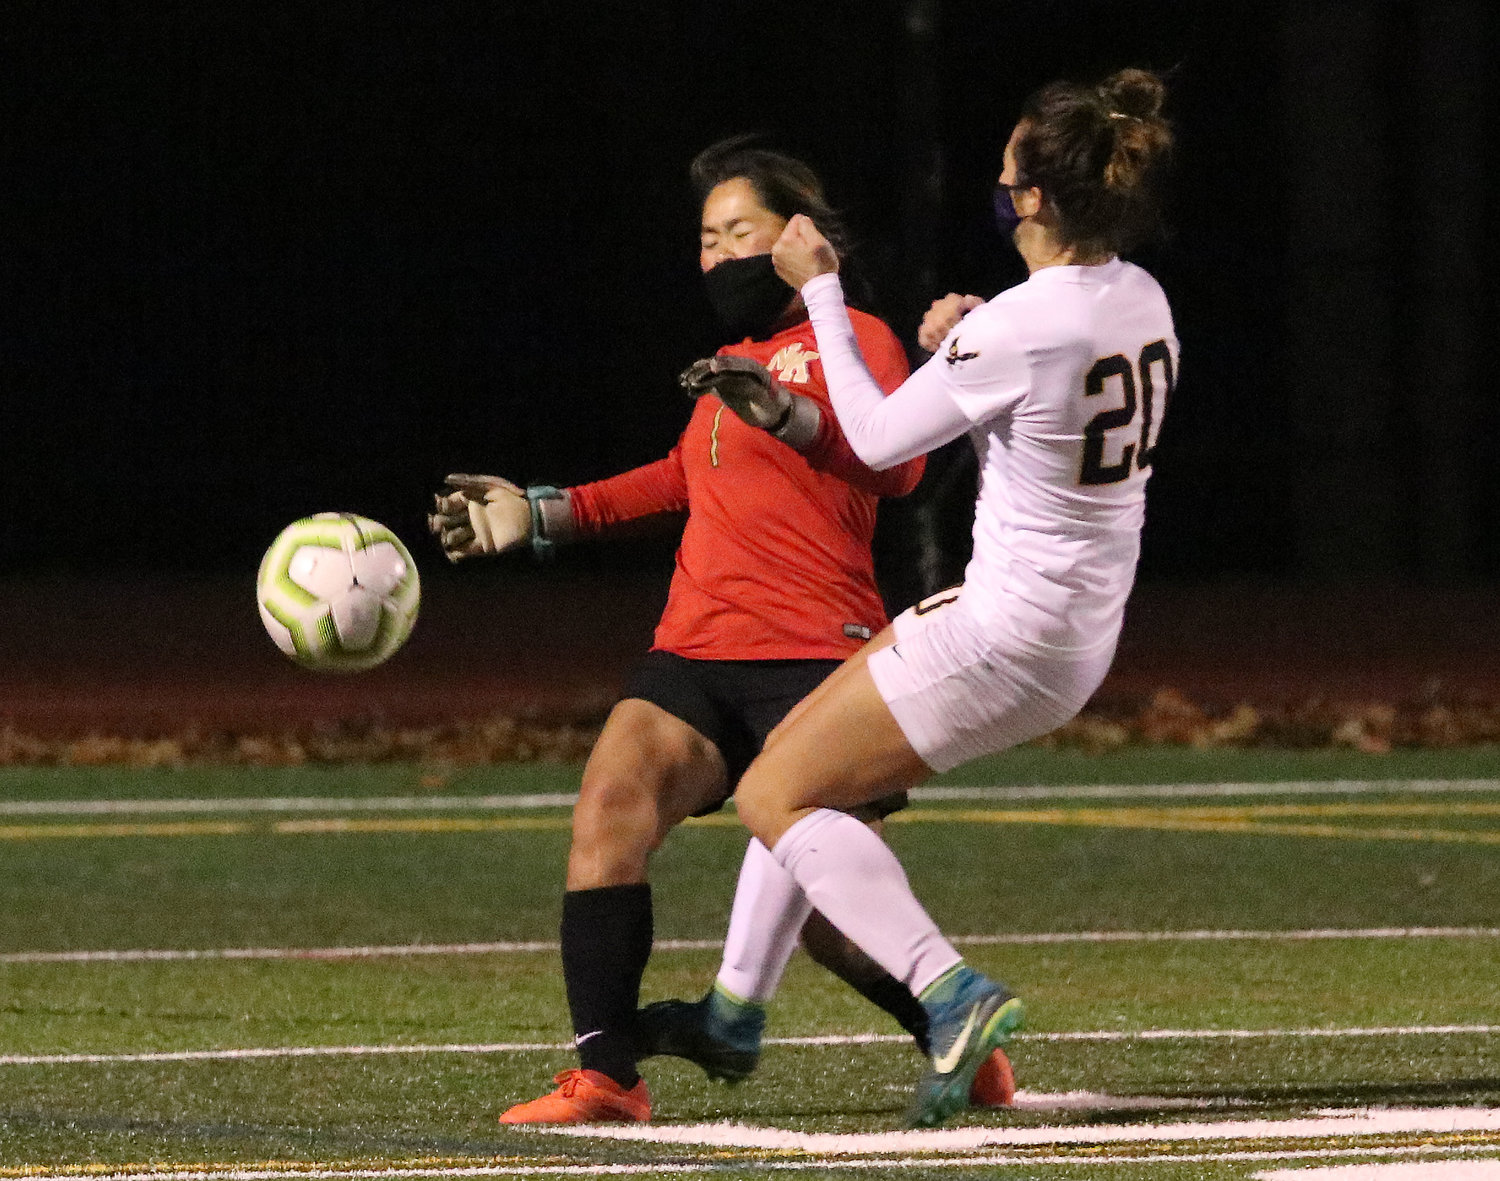 Tess Gagliano runs into the Skippers' goalkeeper during an Eagles scoring bid.